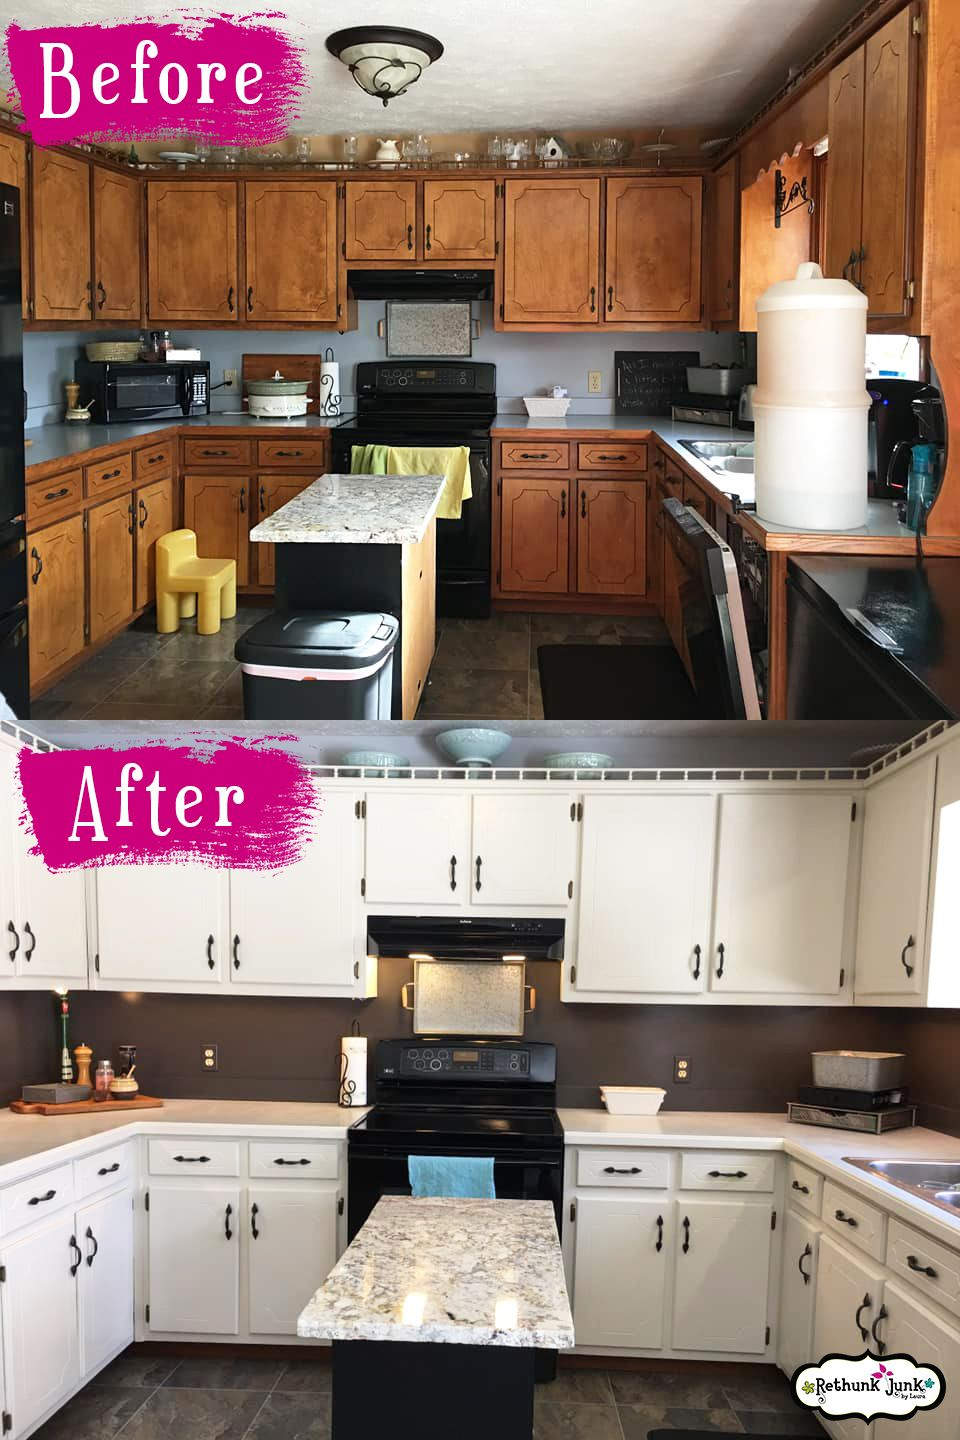 Transform Your Kitchen Cabinets The Easy Way Rethunk Junk Resin Paint Rethunk Junk Kitchen Redo Kitchen Makeover